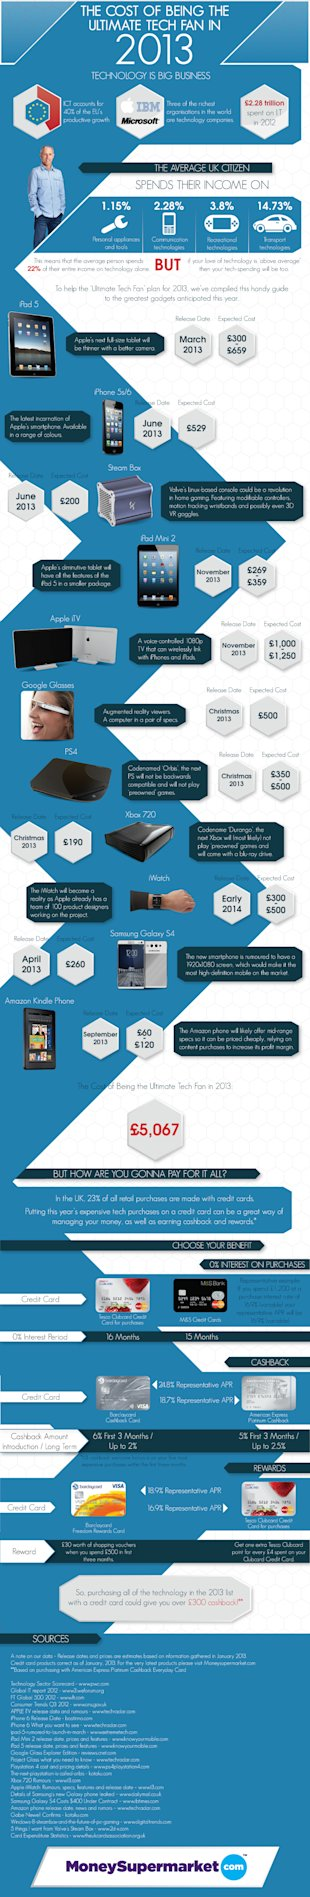 The Cost of Being the Ultimate Tech Fan in 2013 [Infographic] image ultimate tech fan